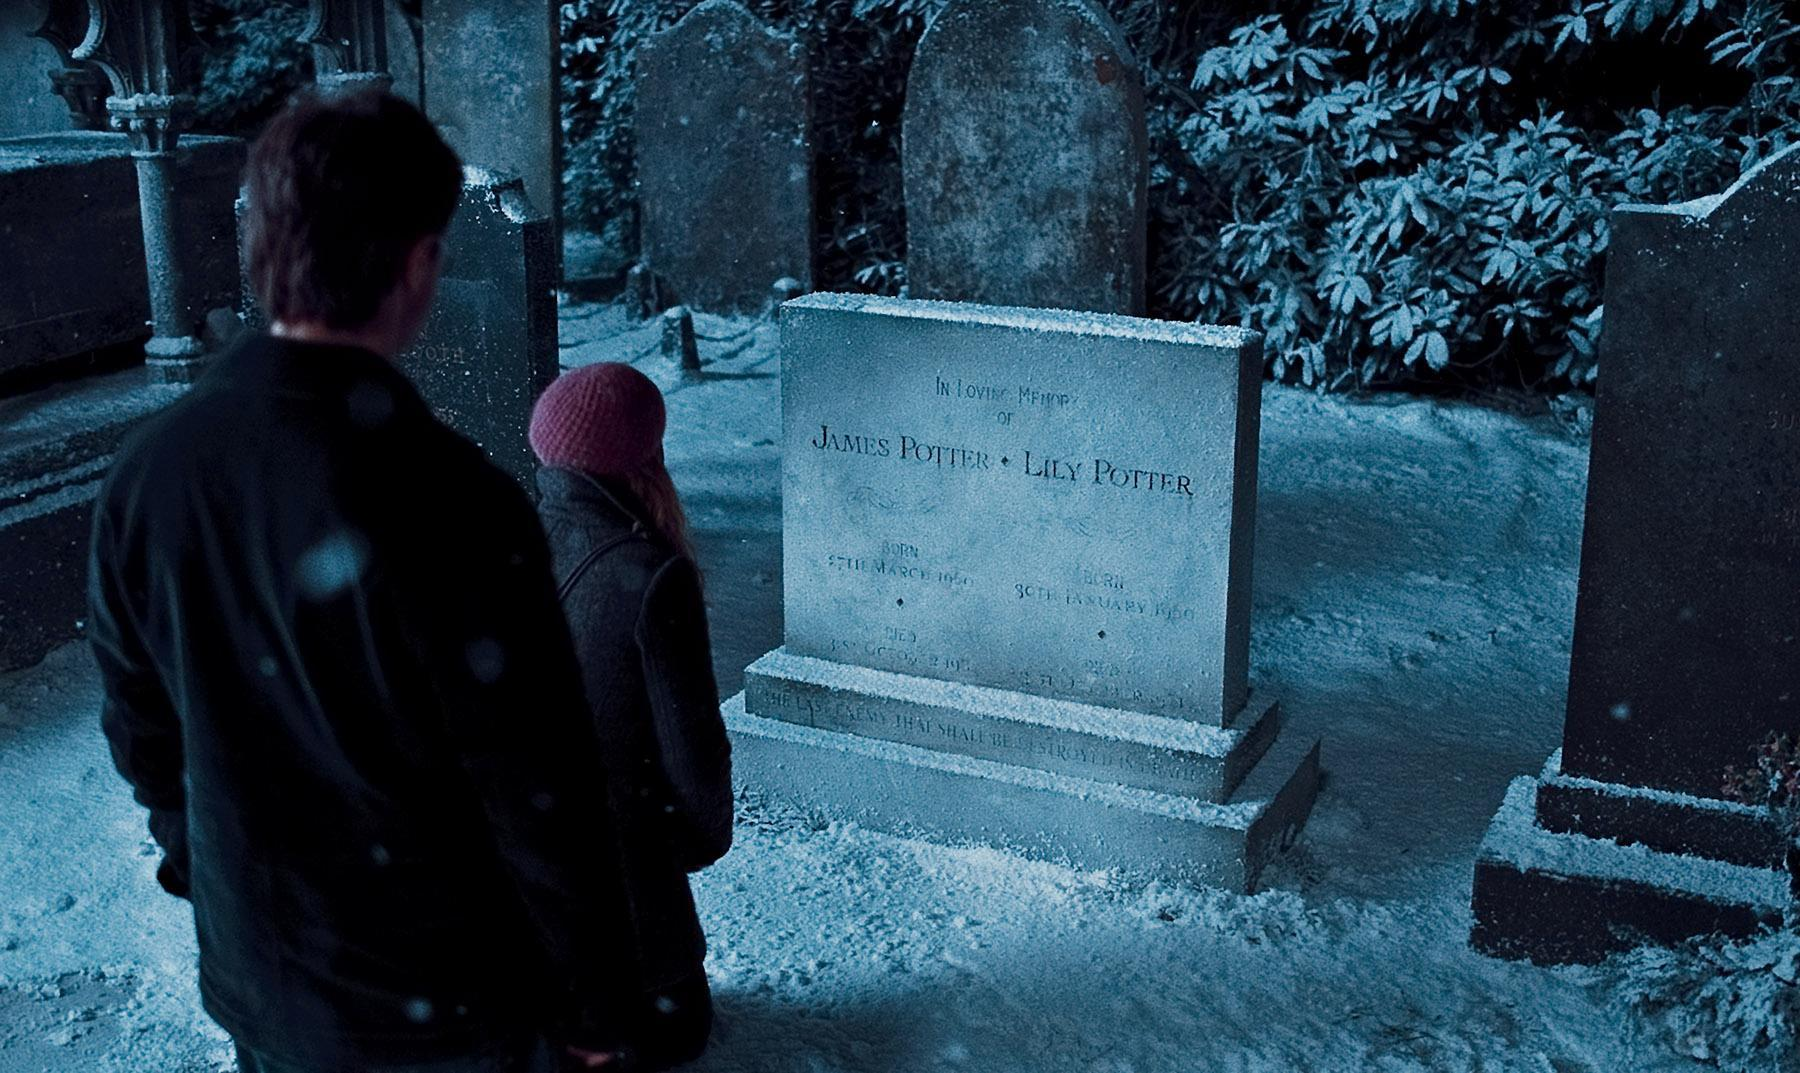 On what date did Voldemort kill Lilly and James?